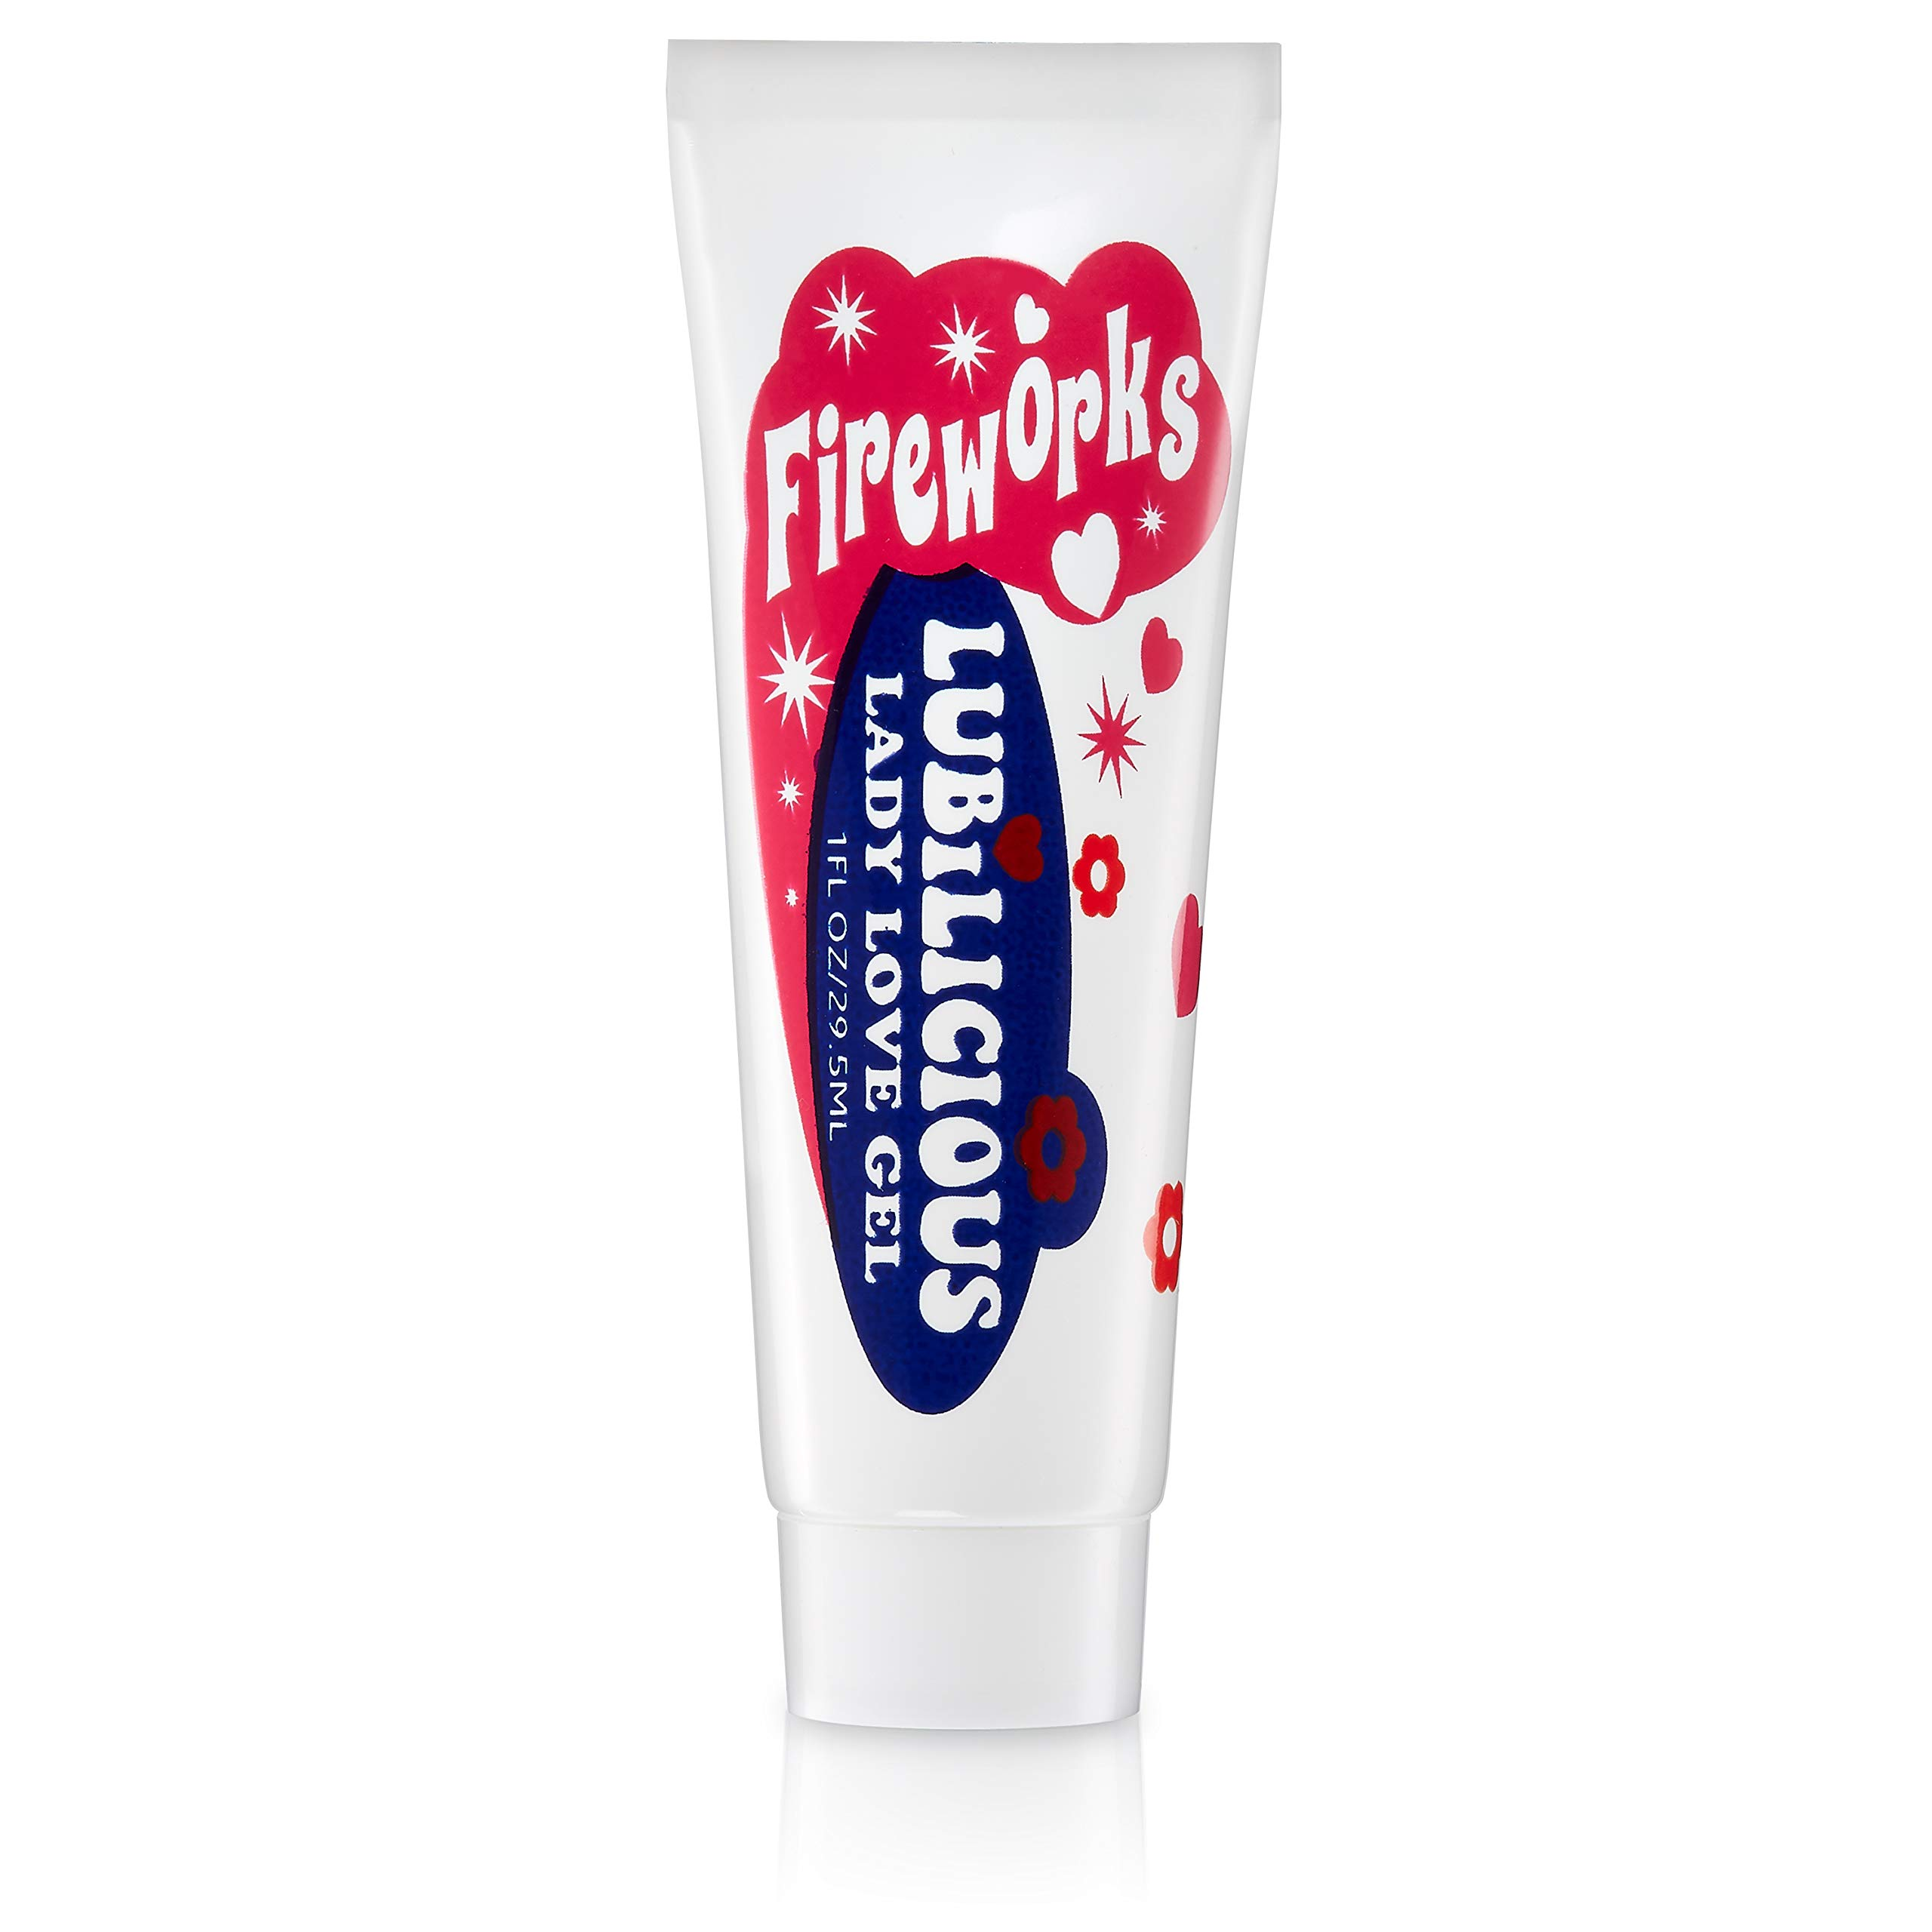 Lubilicious Fireworks Heightened Stimulation Lubricant